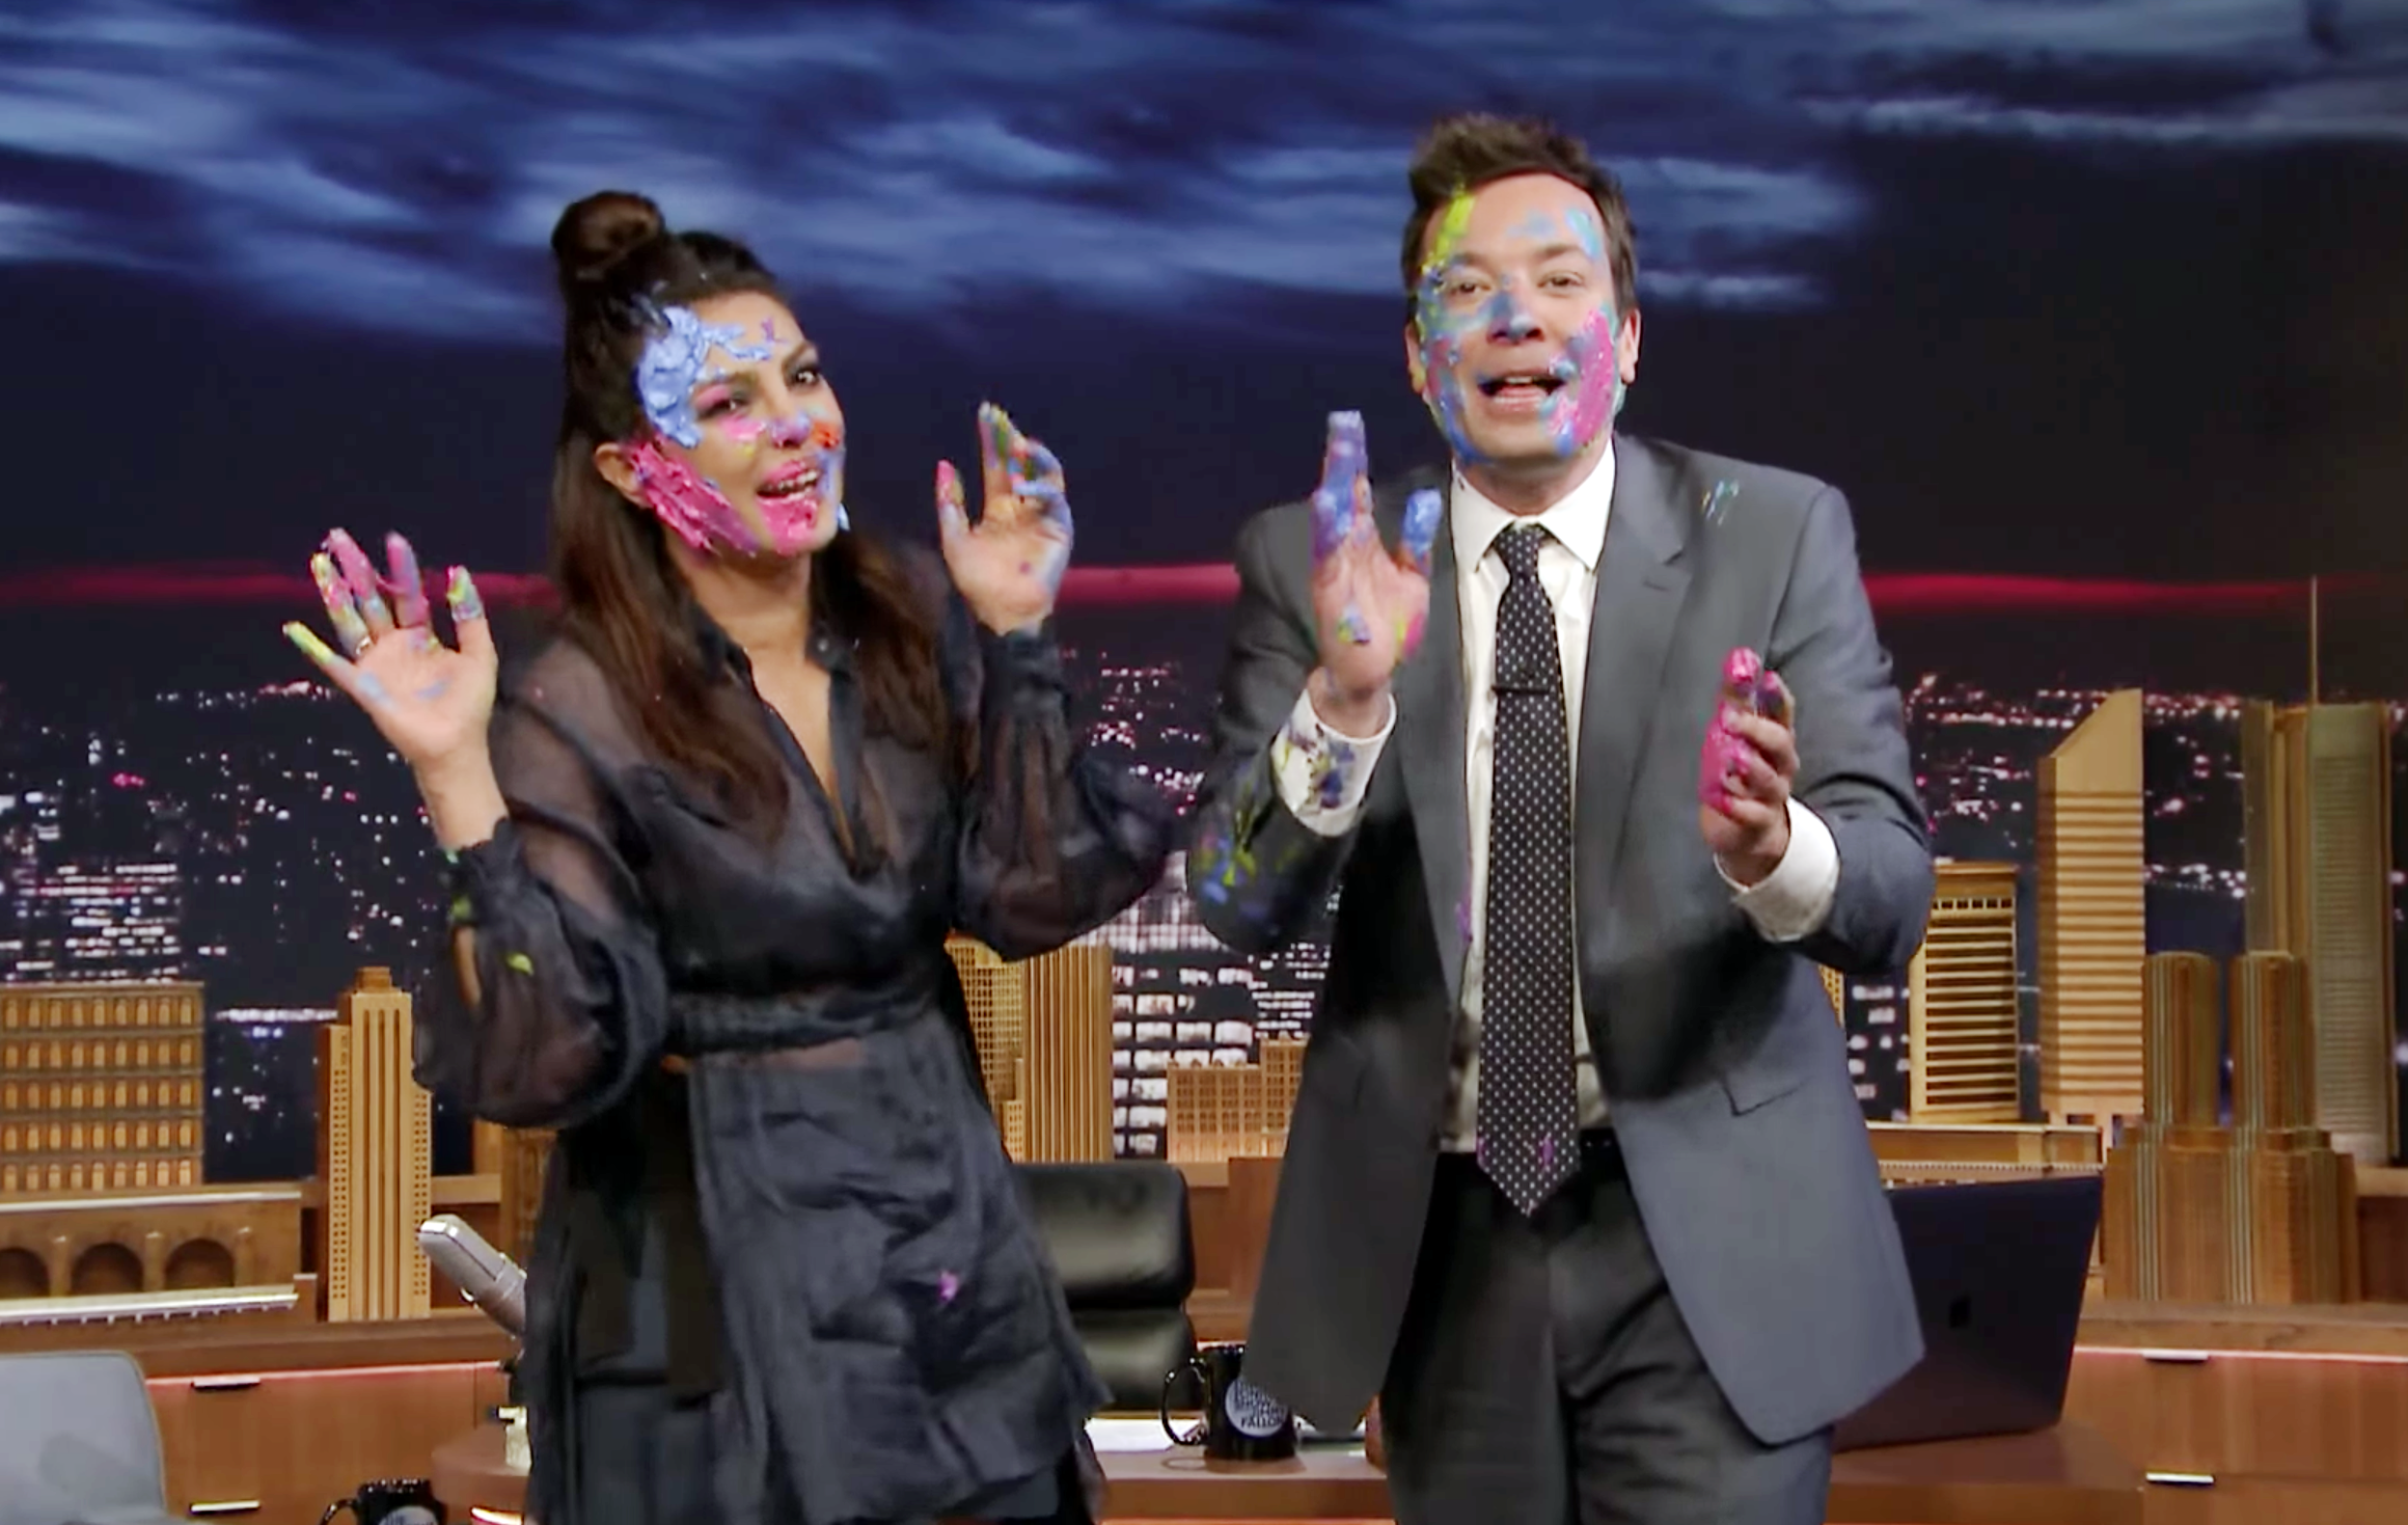 Priyanka Chopra and Jimmy Fallon play Holi on Fallon Tonight. Courtesy: Fallon Tonight